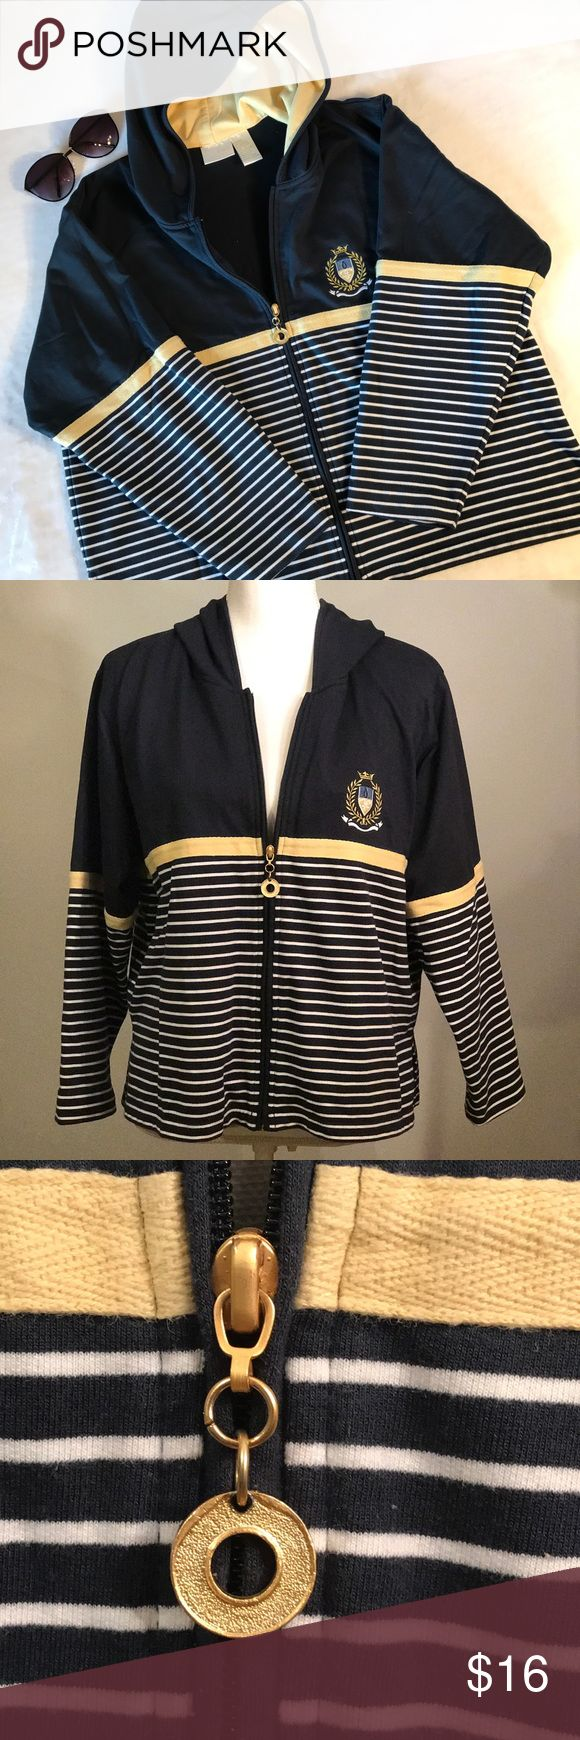 "Koret K-Wear Petites blue nautical zip up hoodie Koret K-Wear Petites navy blue nautical zip up hoodie. Navy blue with yellow knit band at waist and on sleeves. White stripes on bodice and sleeves. Full zip up. Hoodie lined in yellow. Side slits. Embroidered emblem on chest and gold tone zipper charm. Nautical style lightweight hoodie jacket. Size large petite. EUC, excellent used condition. Measurements taken laid flat. 18"" shoulder width, 23"" bust, 23 ½"" length. Koret Jackets & Coats"